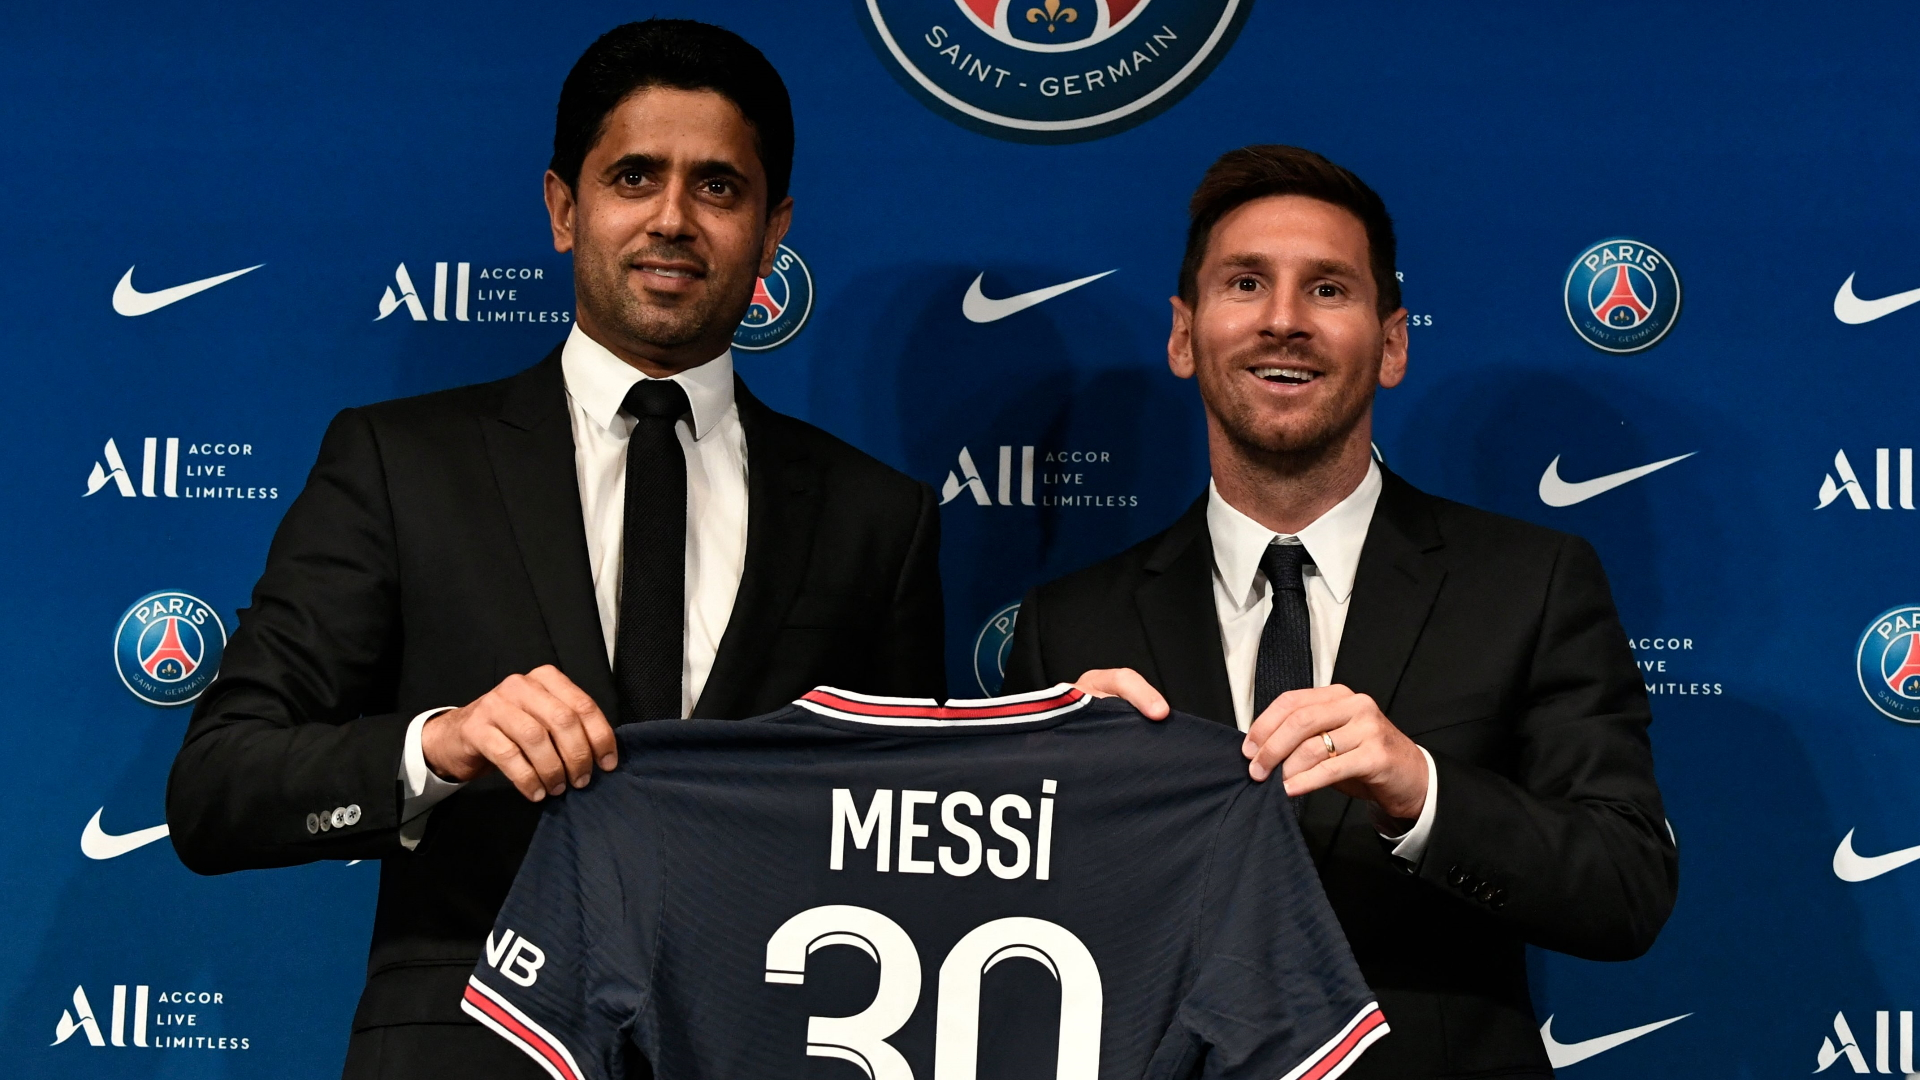 Messi signing does not break Financial Fair Play rules, insists PSG president Al-Khelaifi